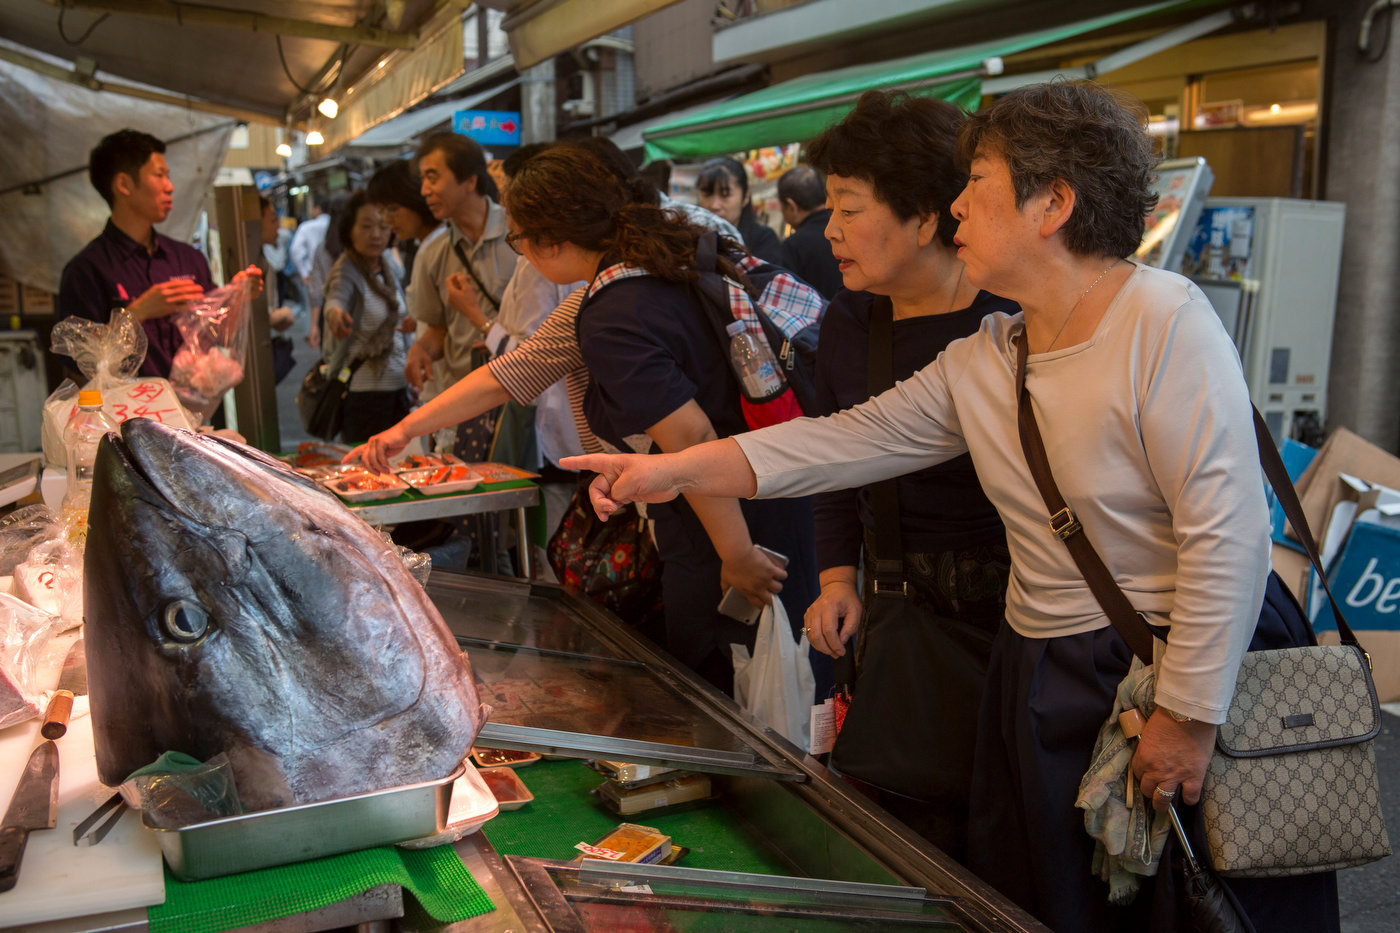 A tuna head greets visitors at a fish stand in the Tsukiji exterior fish market.